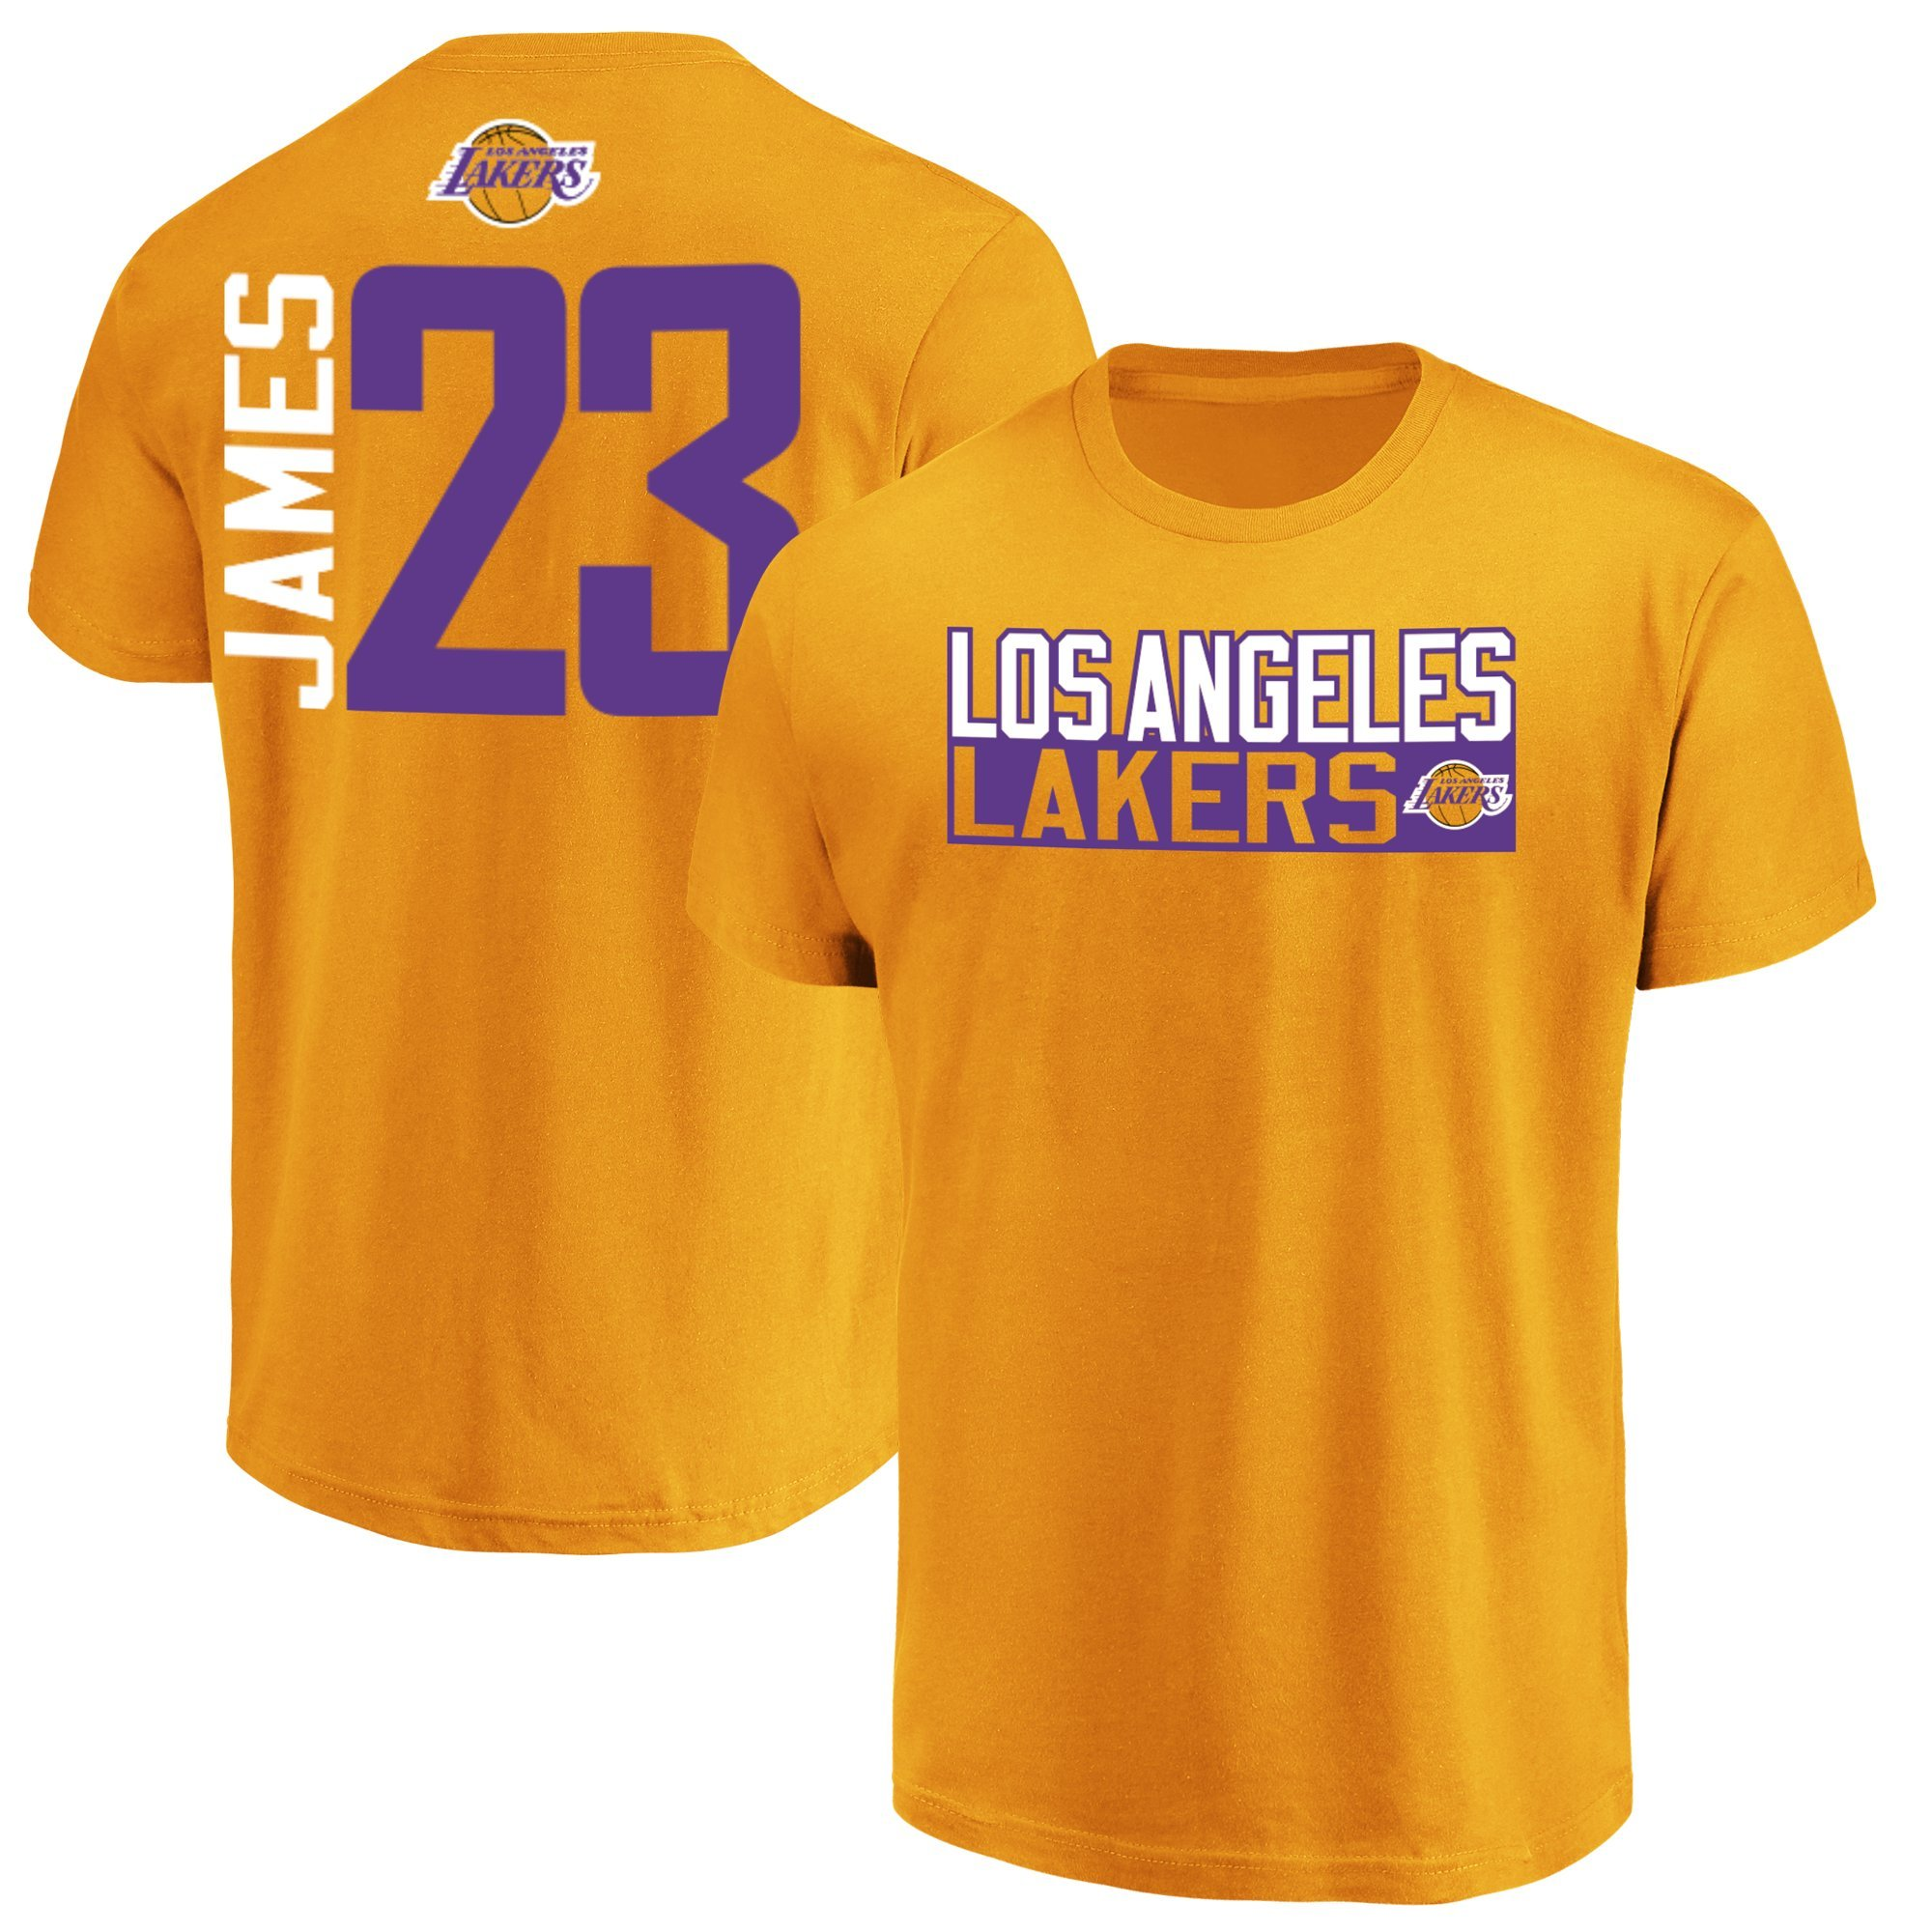 9f1f42f1a Majestic Lebron James Los Angeles Lakers  23 Men s Vertical Player T-Shirt